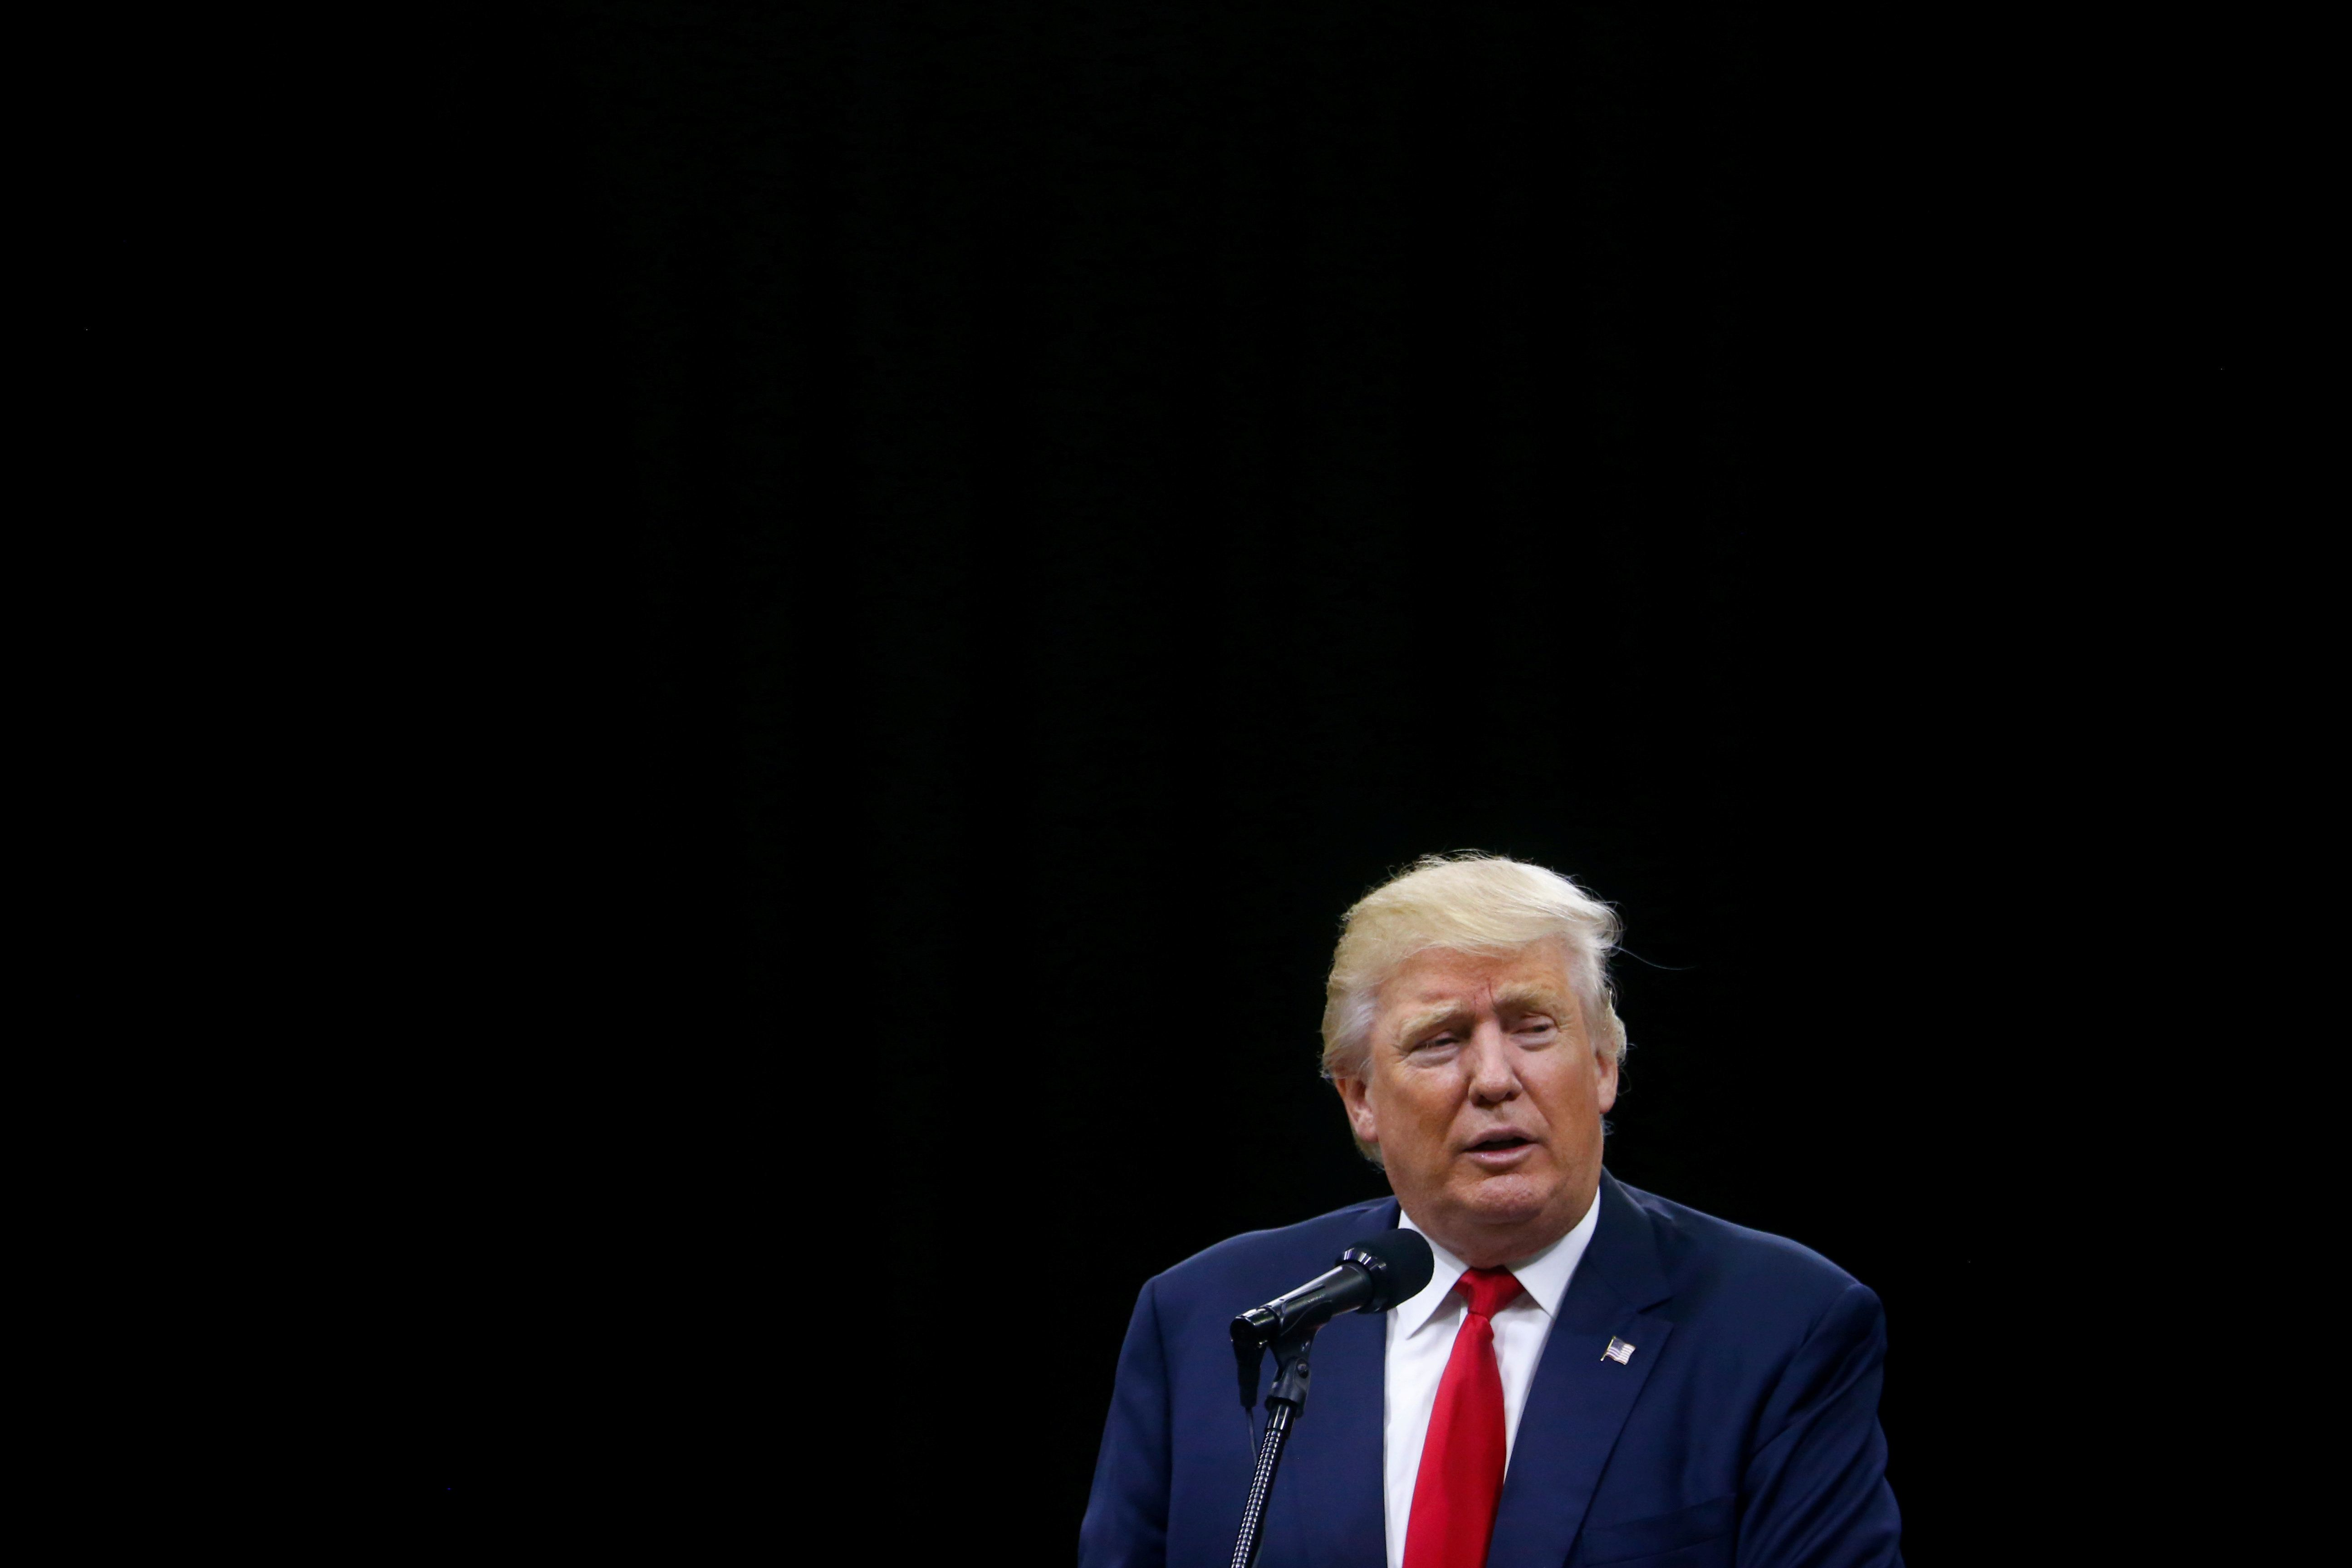 Republican U.S. Presidential nominee Donald Trump attends a campaign event at the Greater Columbus Convention Center in Columbus, Ohio August 1, 2016. REUTERS/Eric Thayer